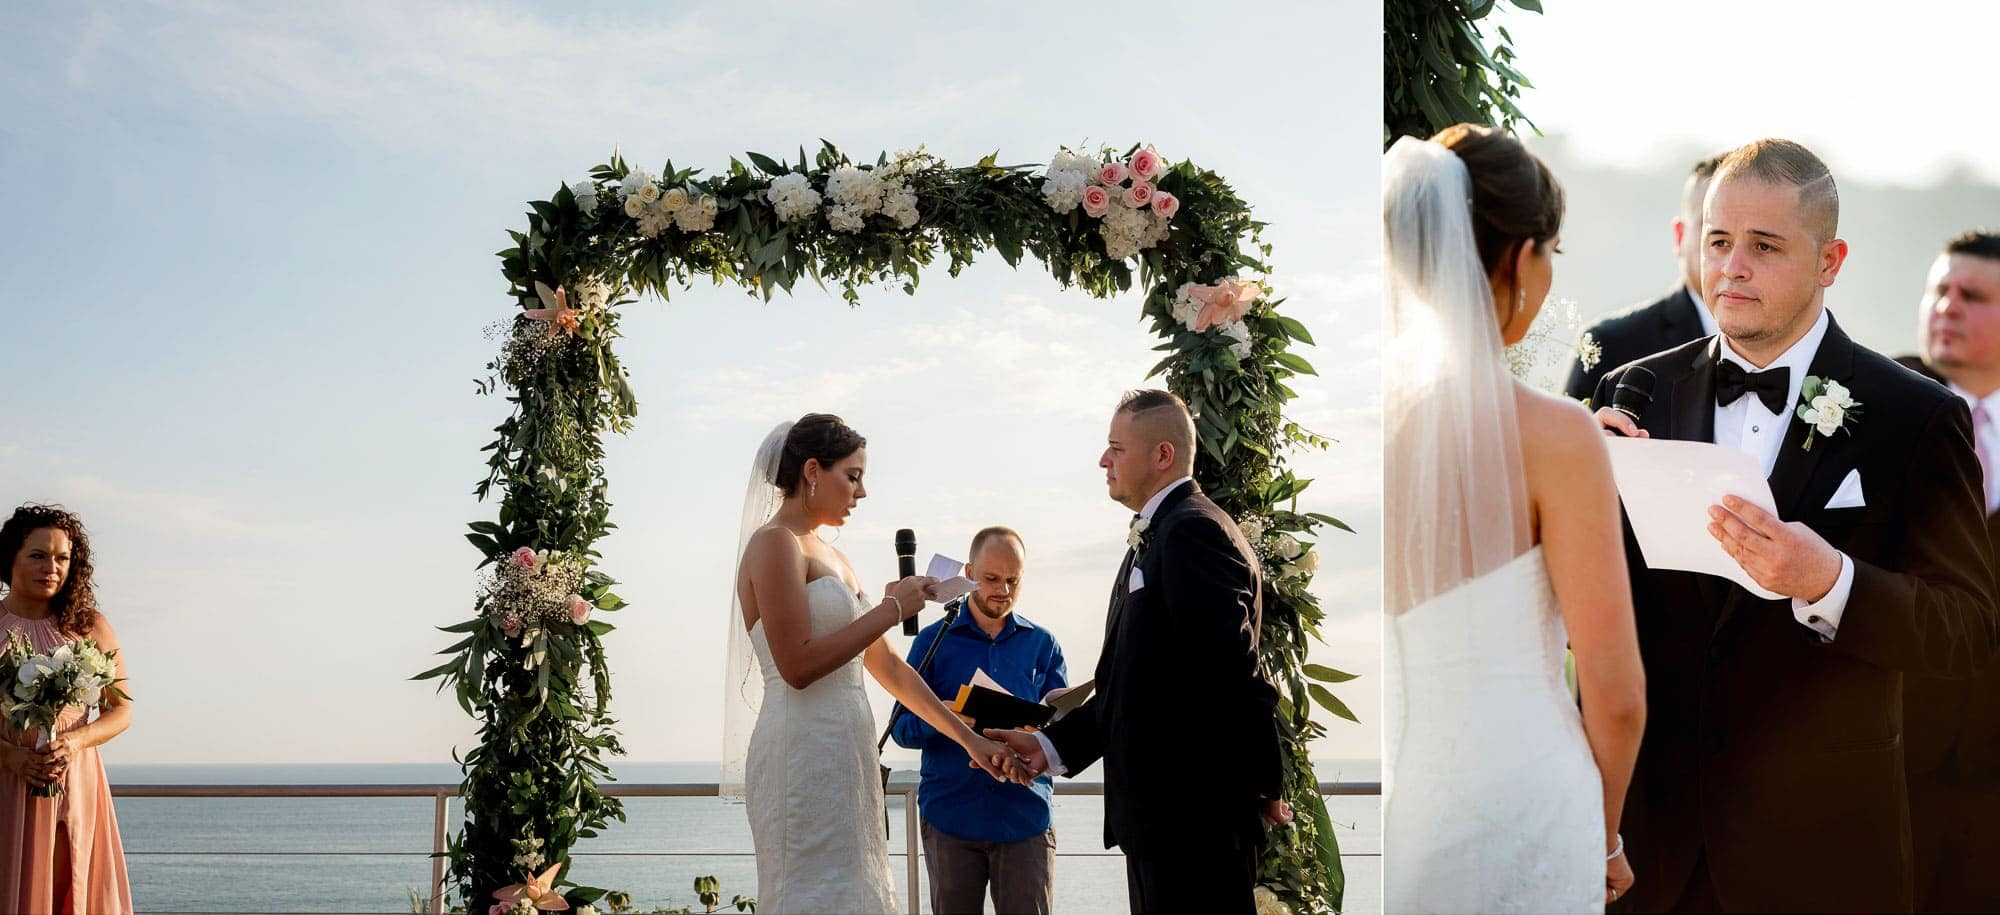 The bride and groom read their vows